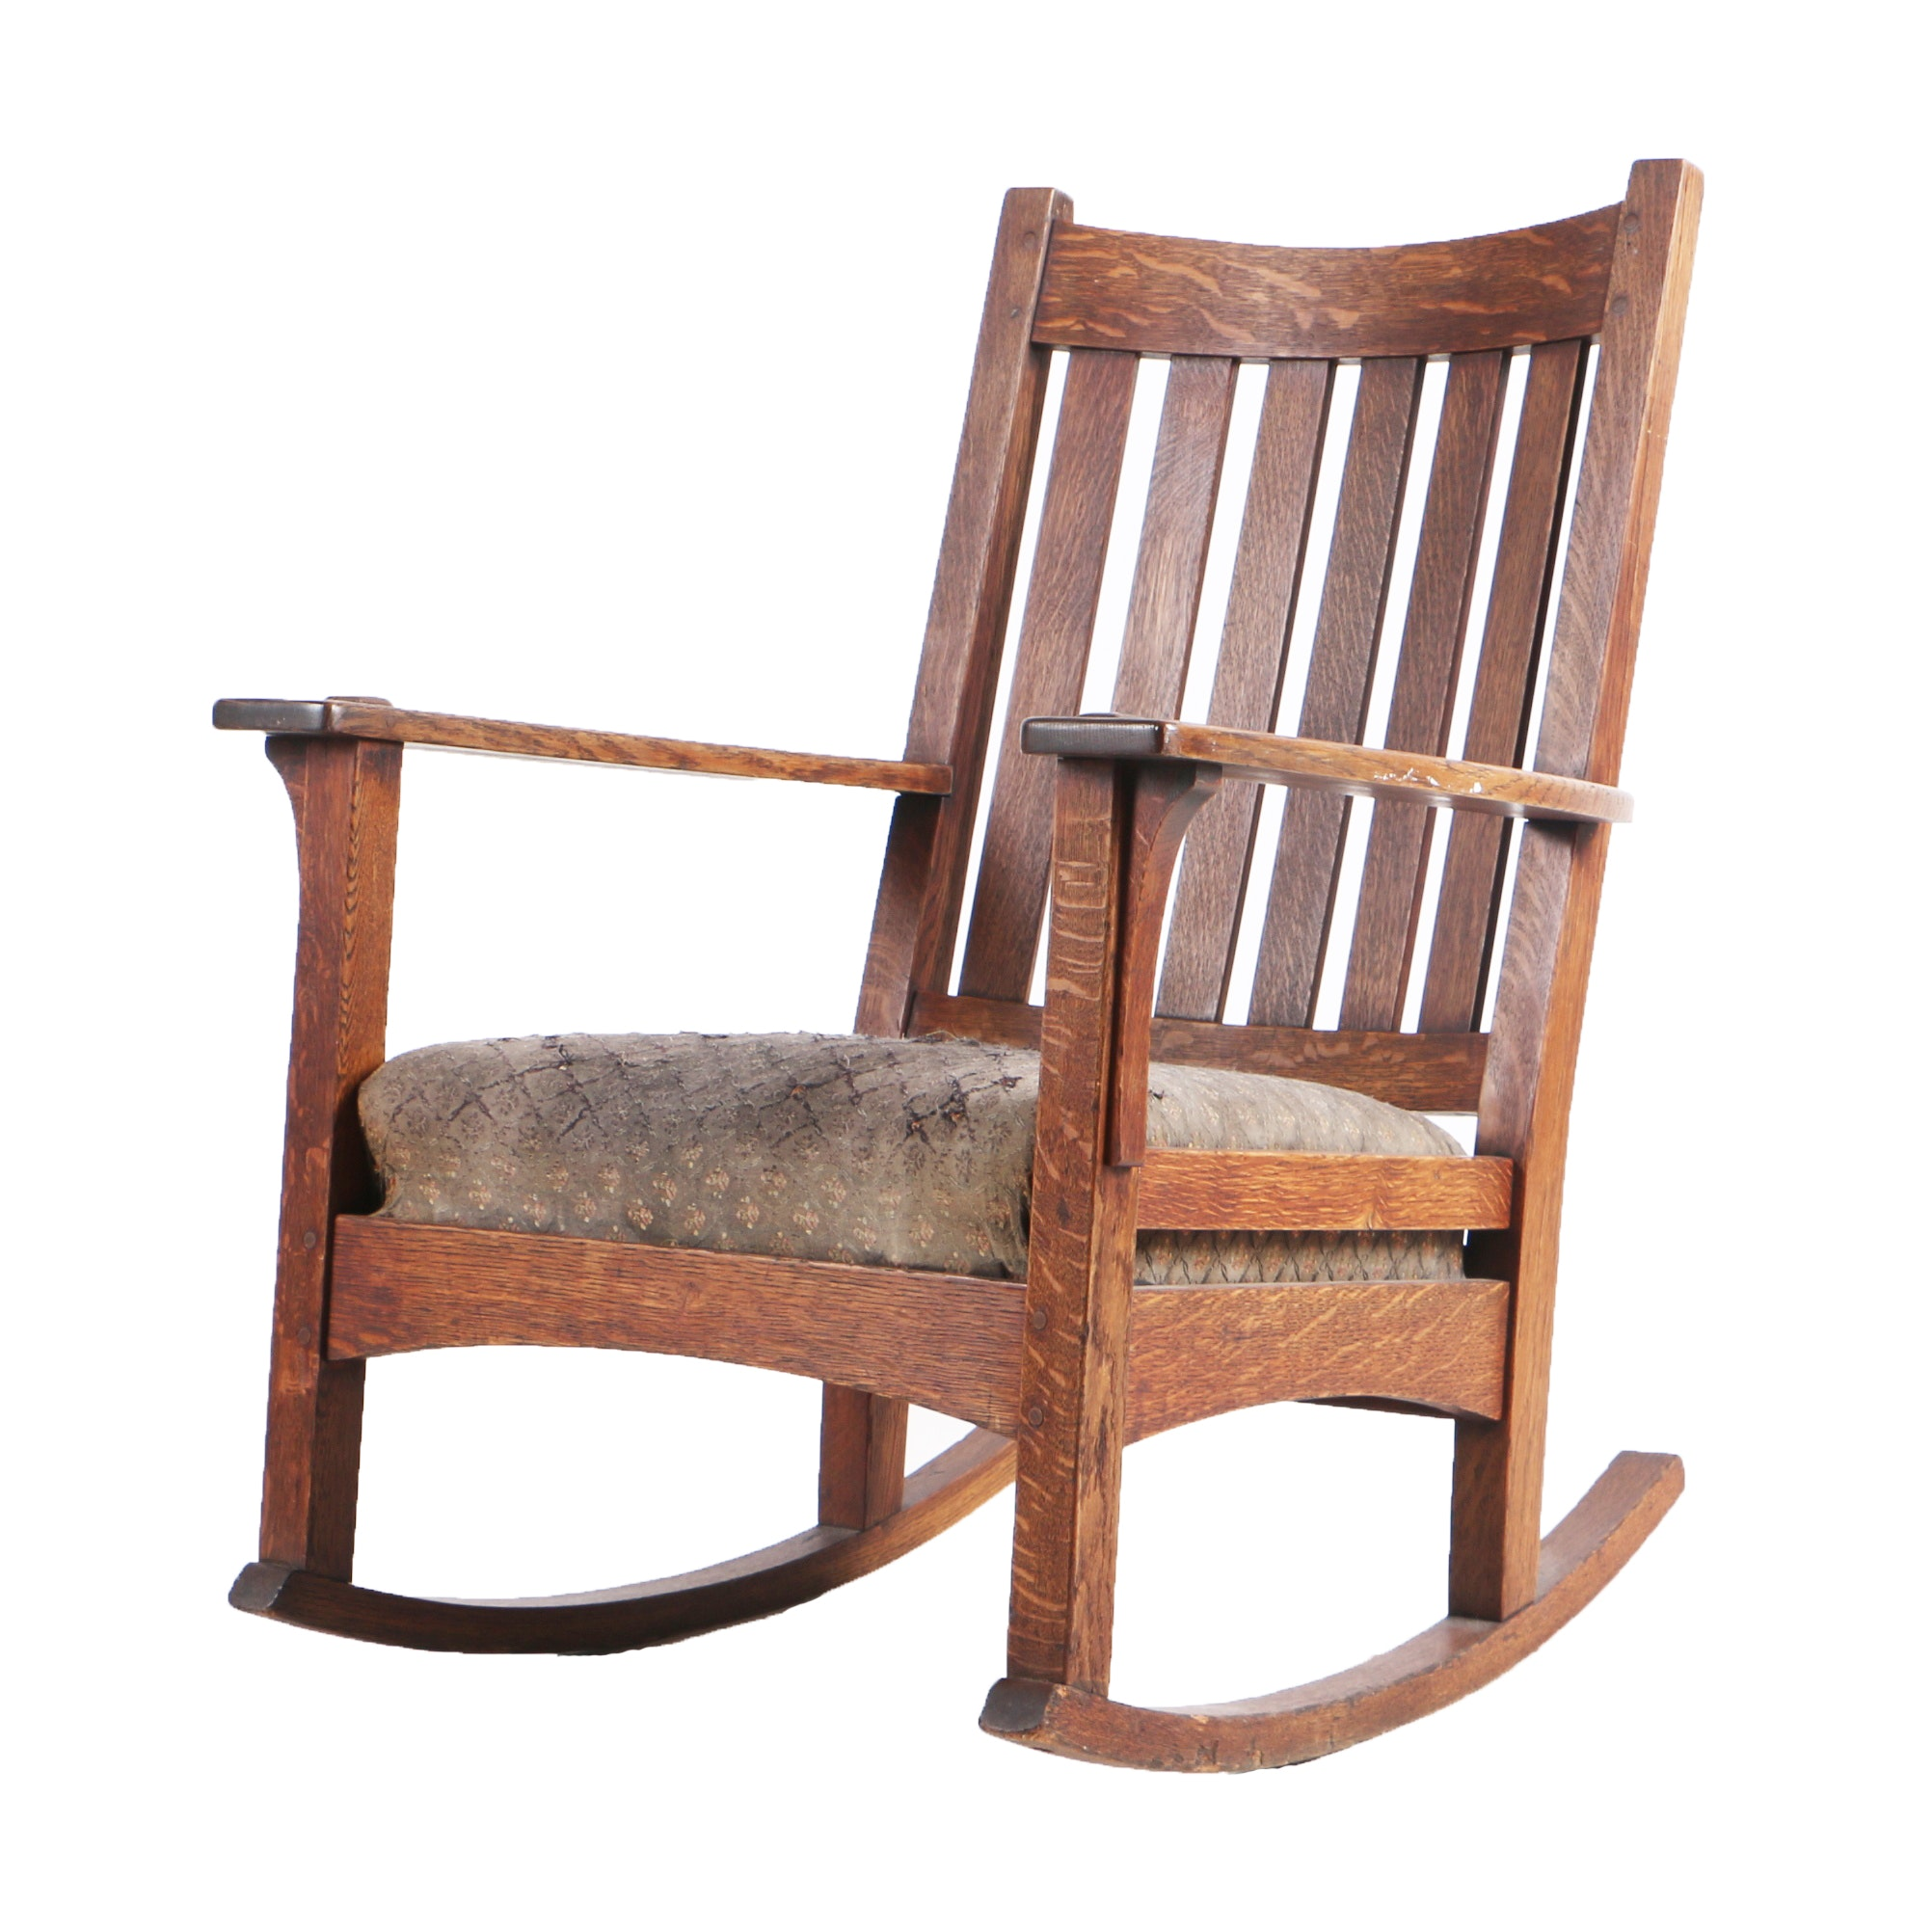 Circa 1912 to 1920 Arts and Crafts Rocking Chair by L. & J.G. Stickley